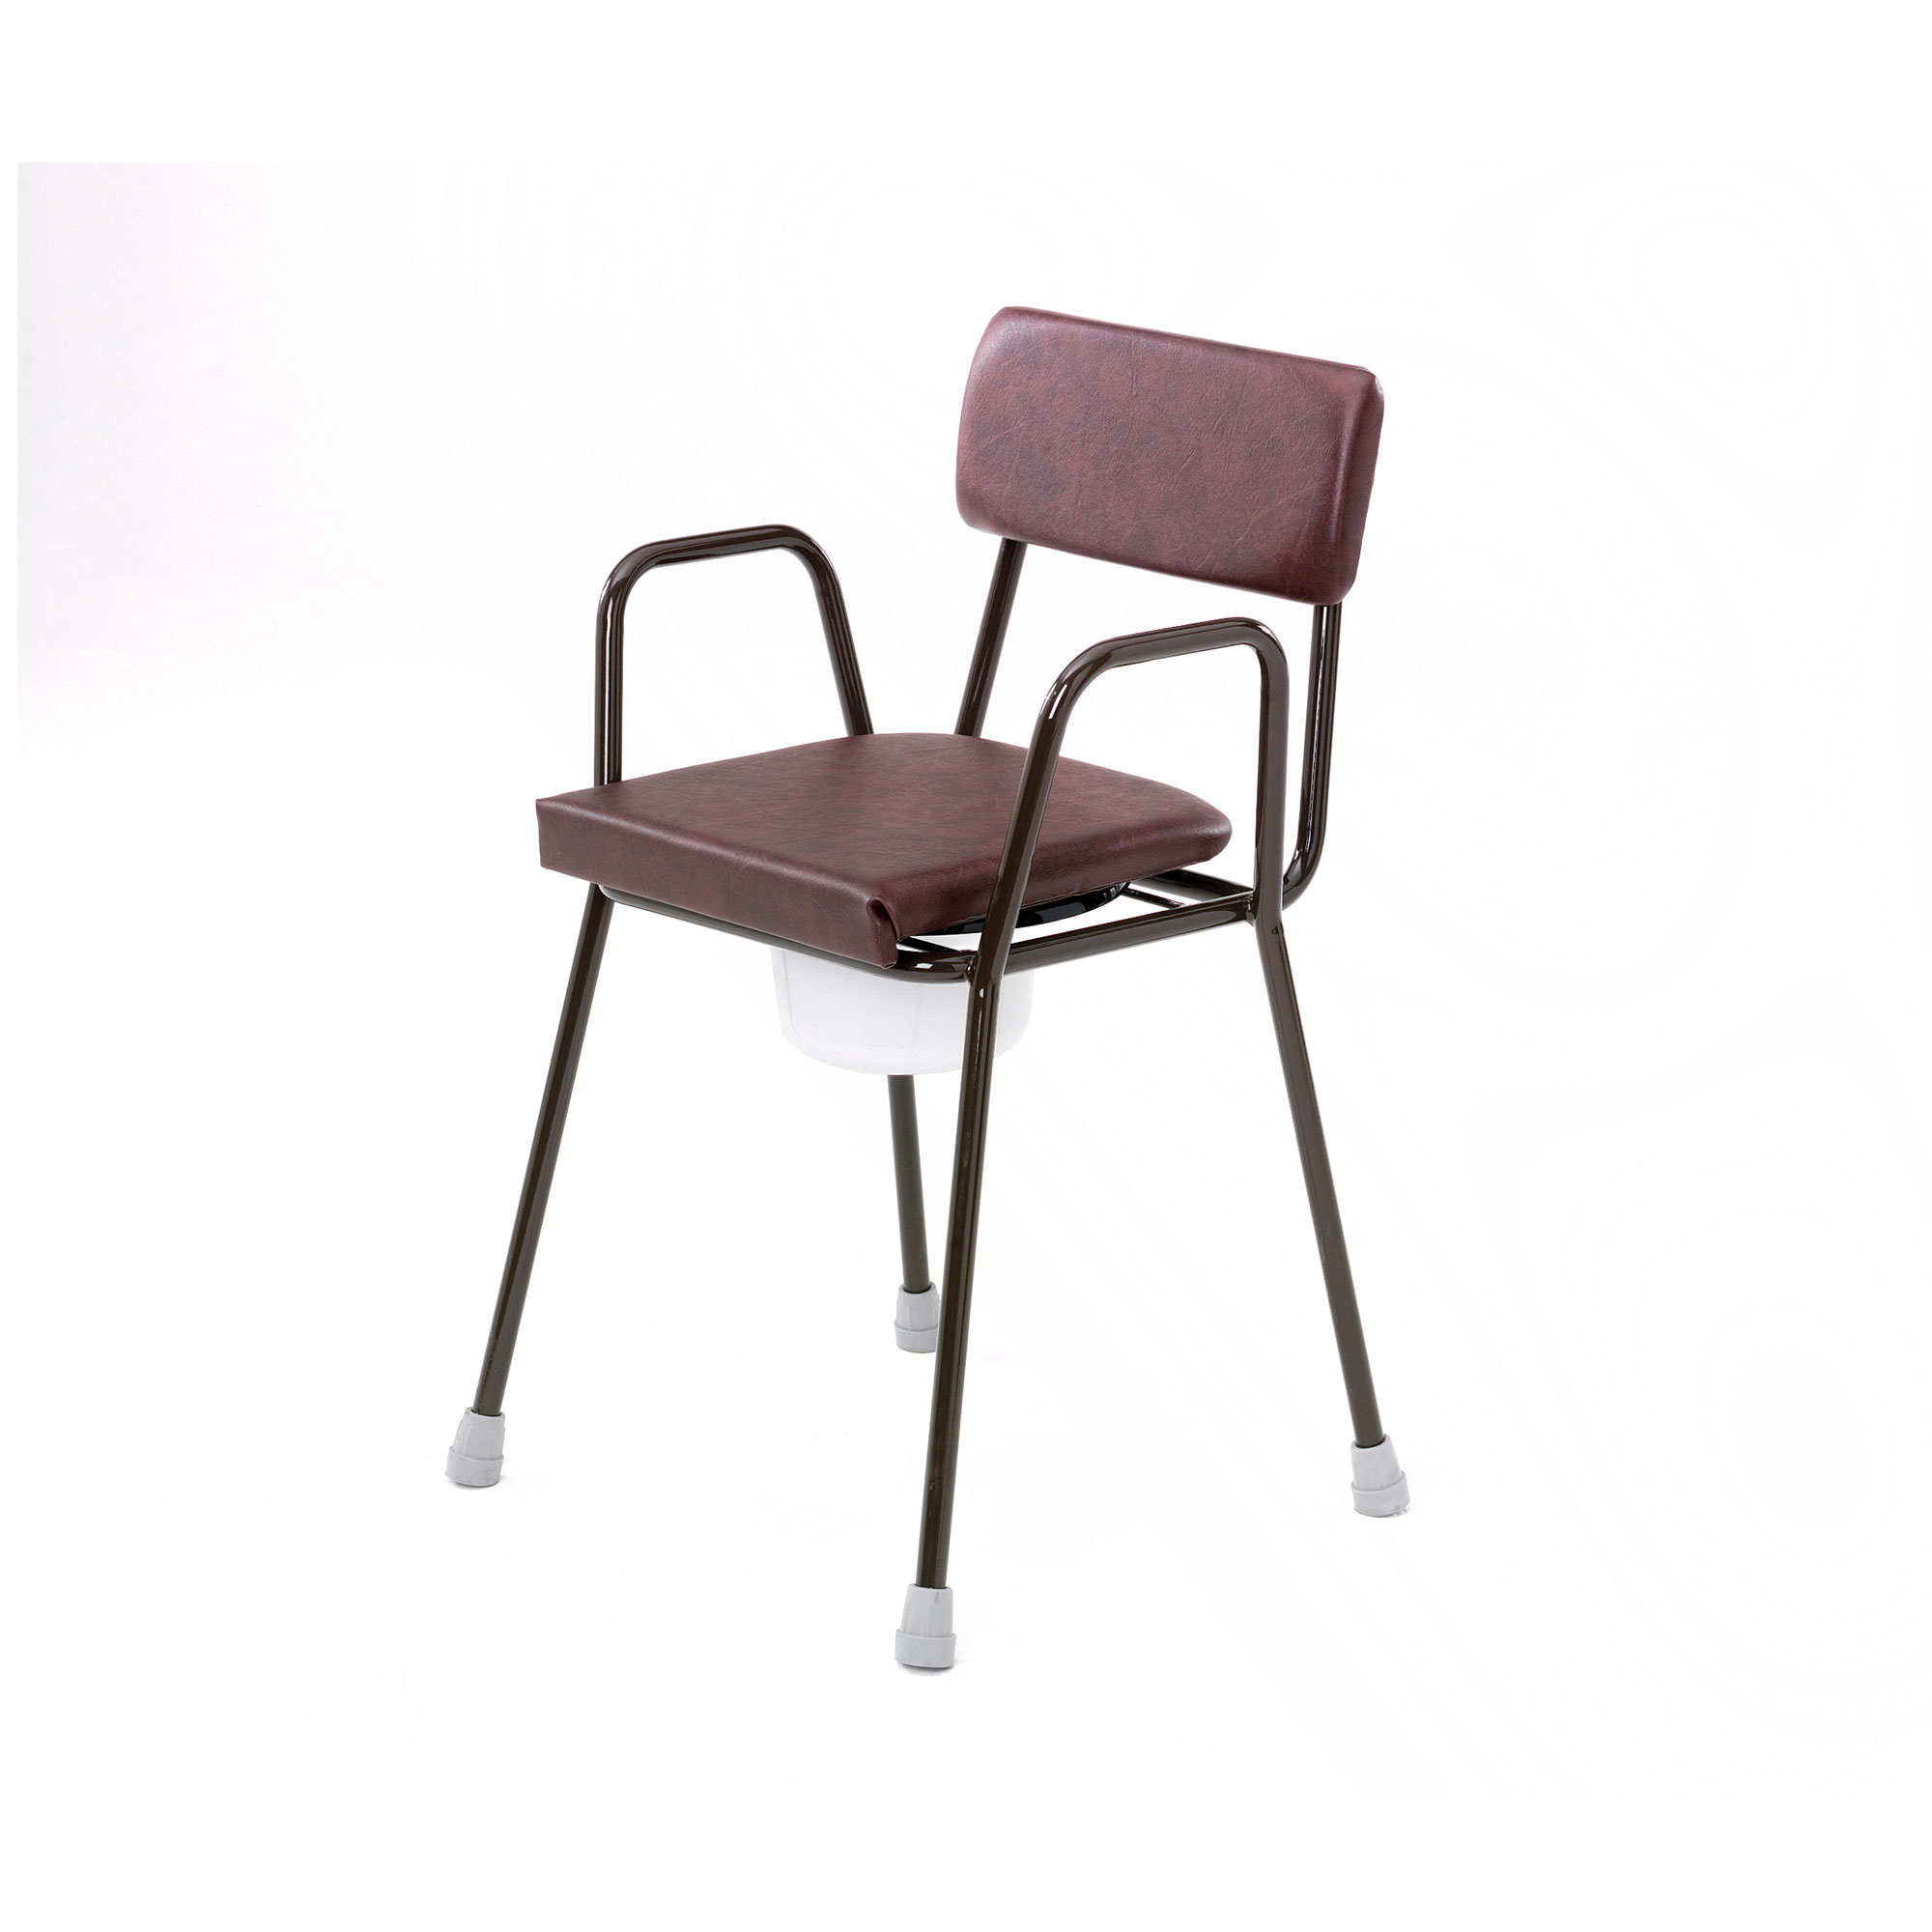 3521a Height Adjustable Stacking Commode Roma Medical